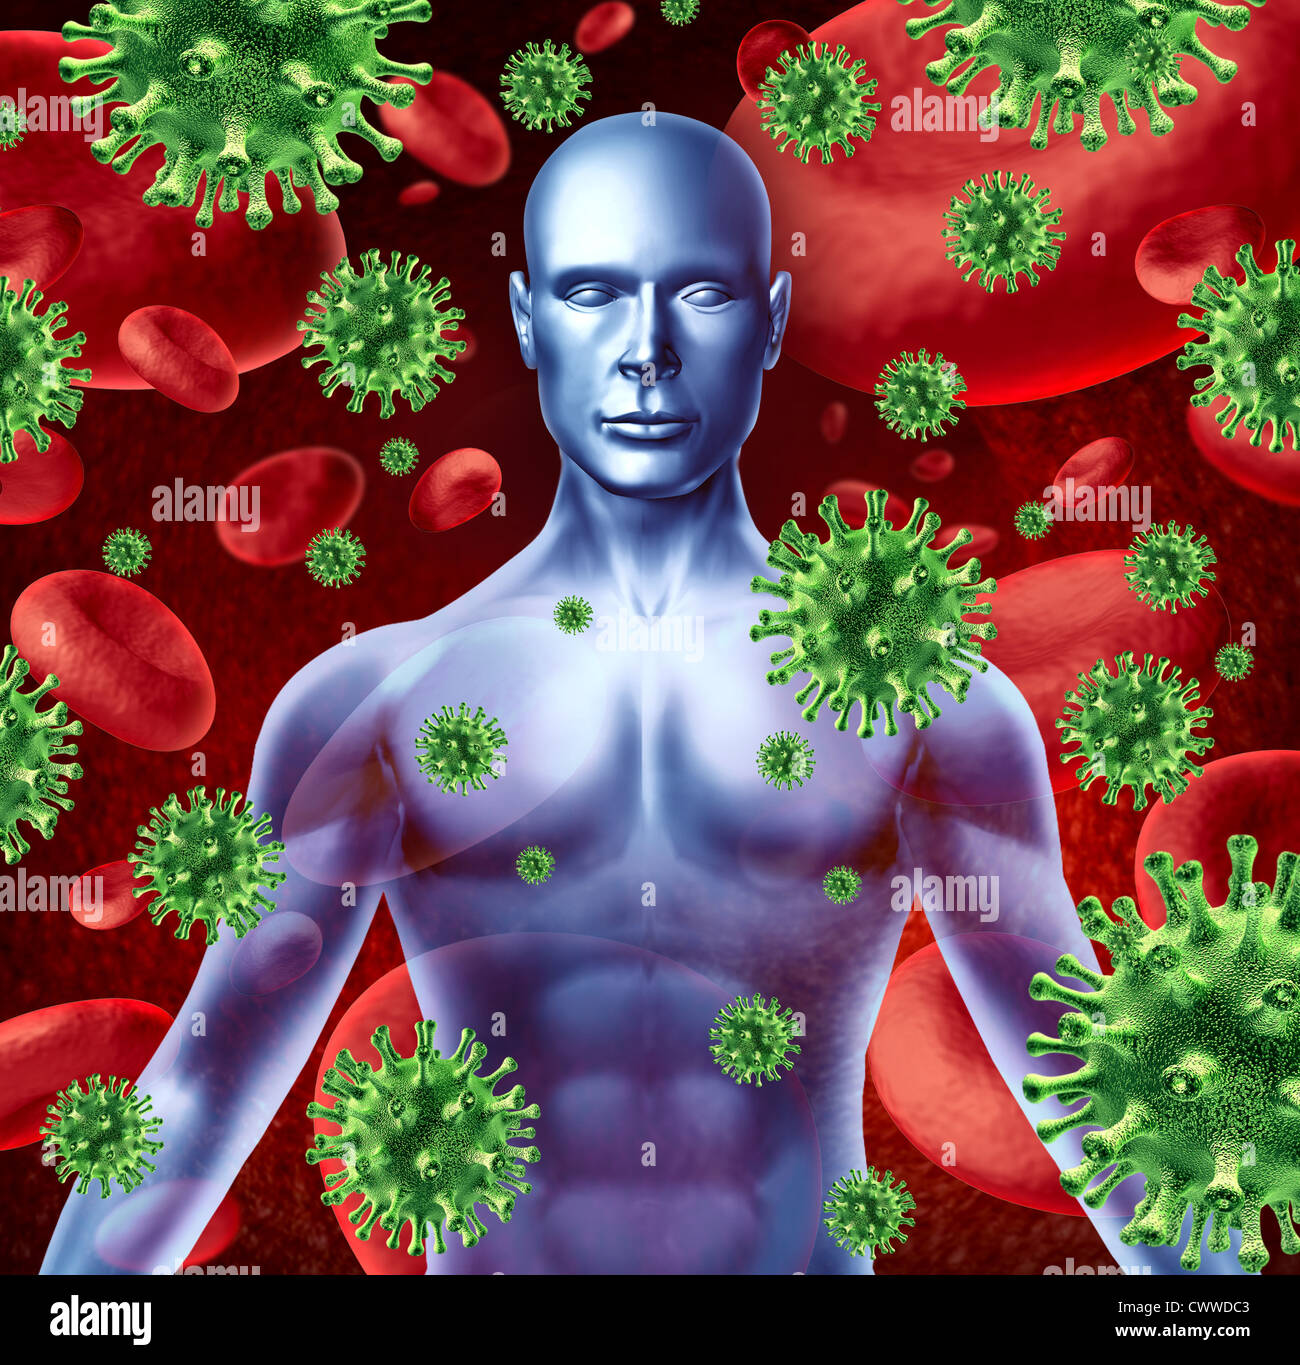 Human disease and infection representing a medical health concept of bacterial virus transfer and spread of infections - Stock Image